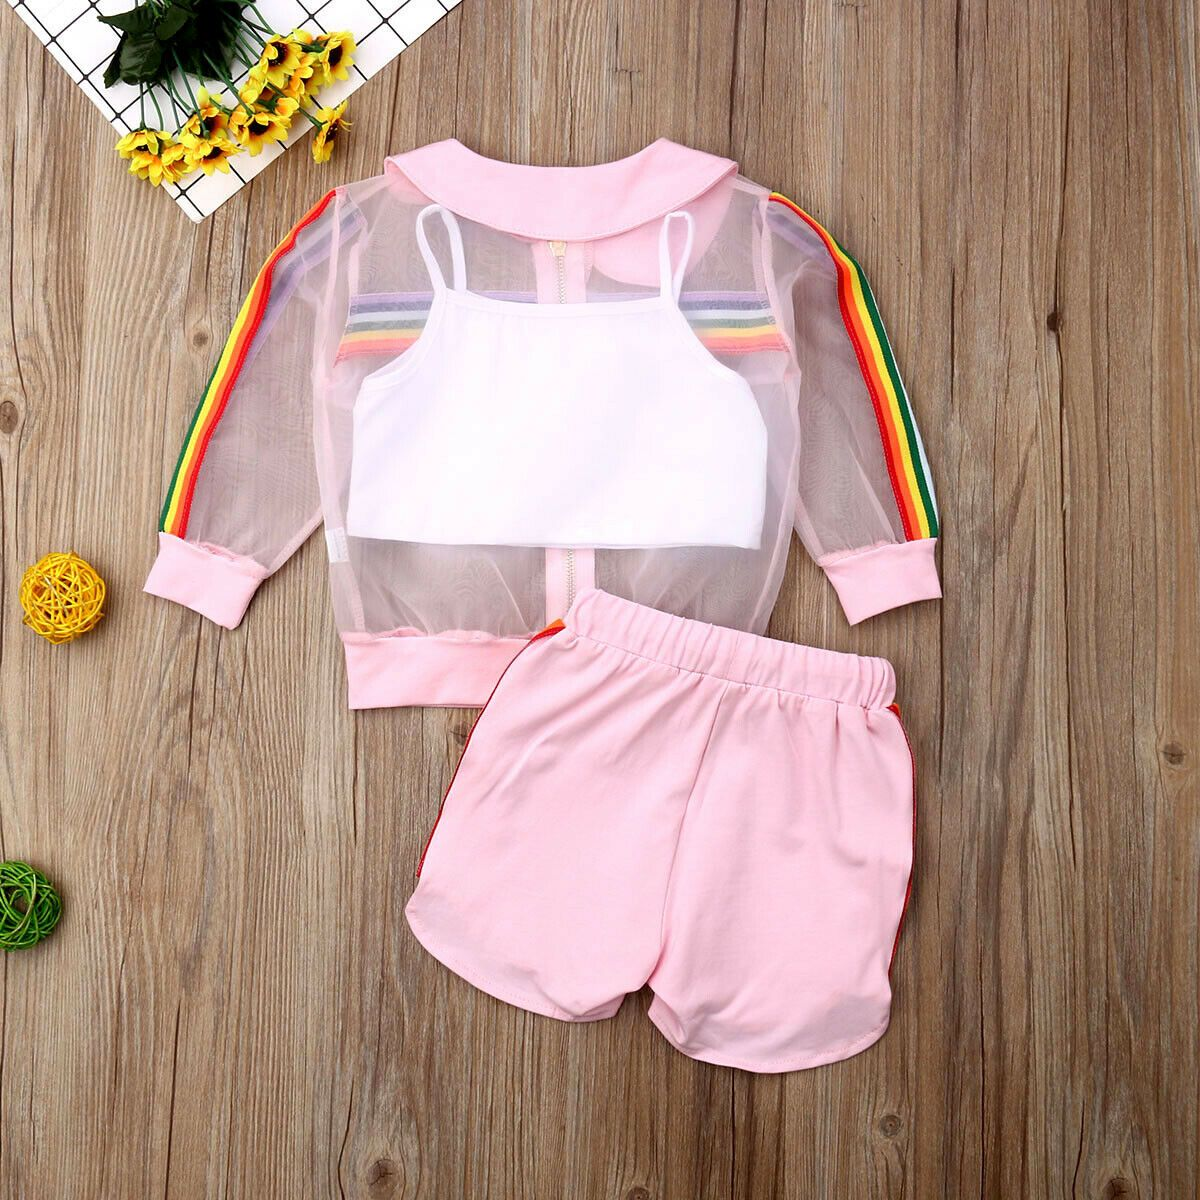 1-7Y Newborn Kid Baby Girl Fashion 3PCS Rainbow Sets Long Sleeve Coat+Vest+Shorts Outfit Clothes Summer – ALSUPERSALES – Çocuk giyim